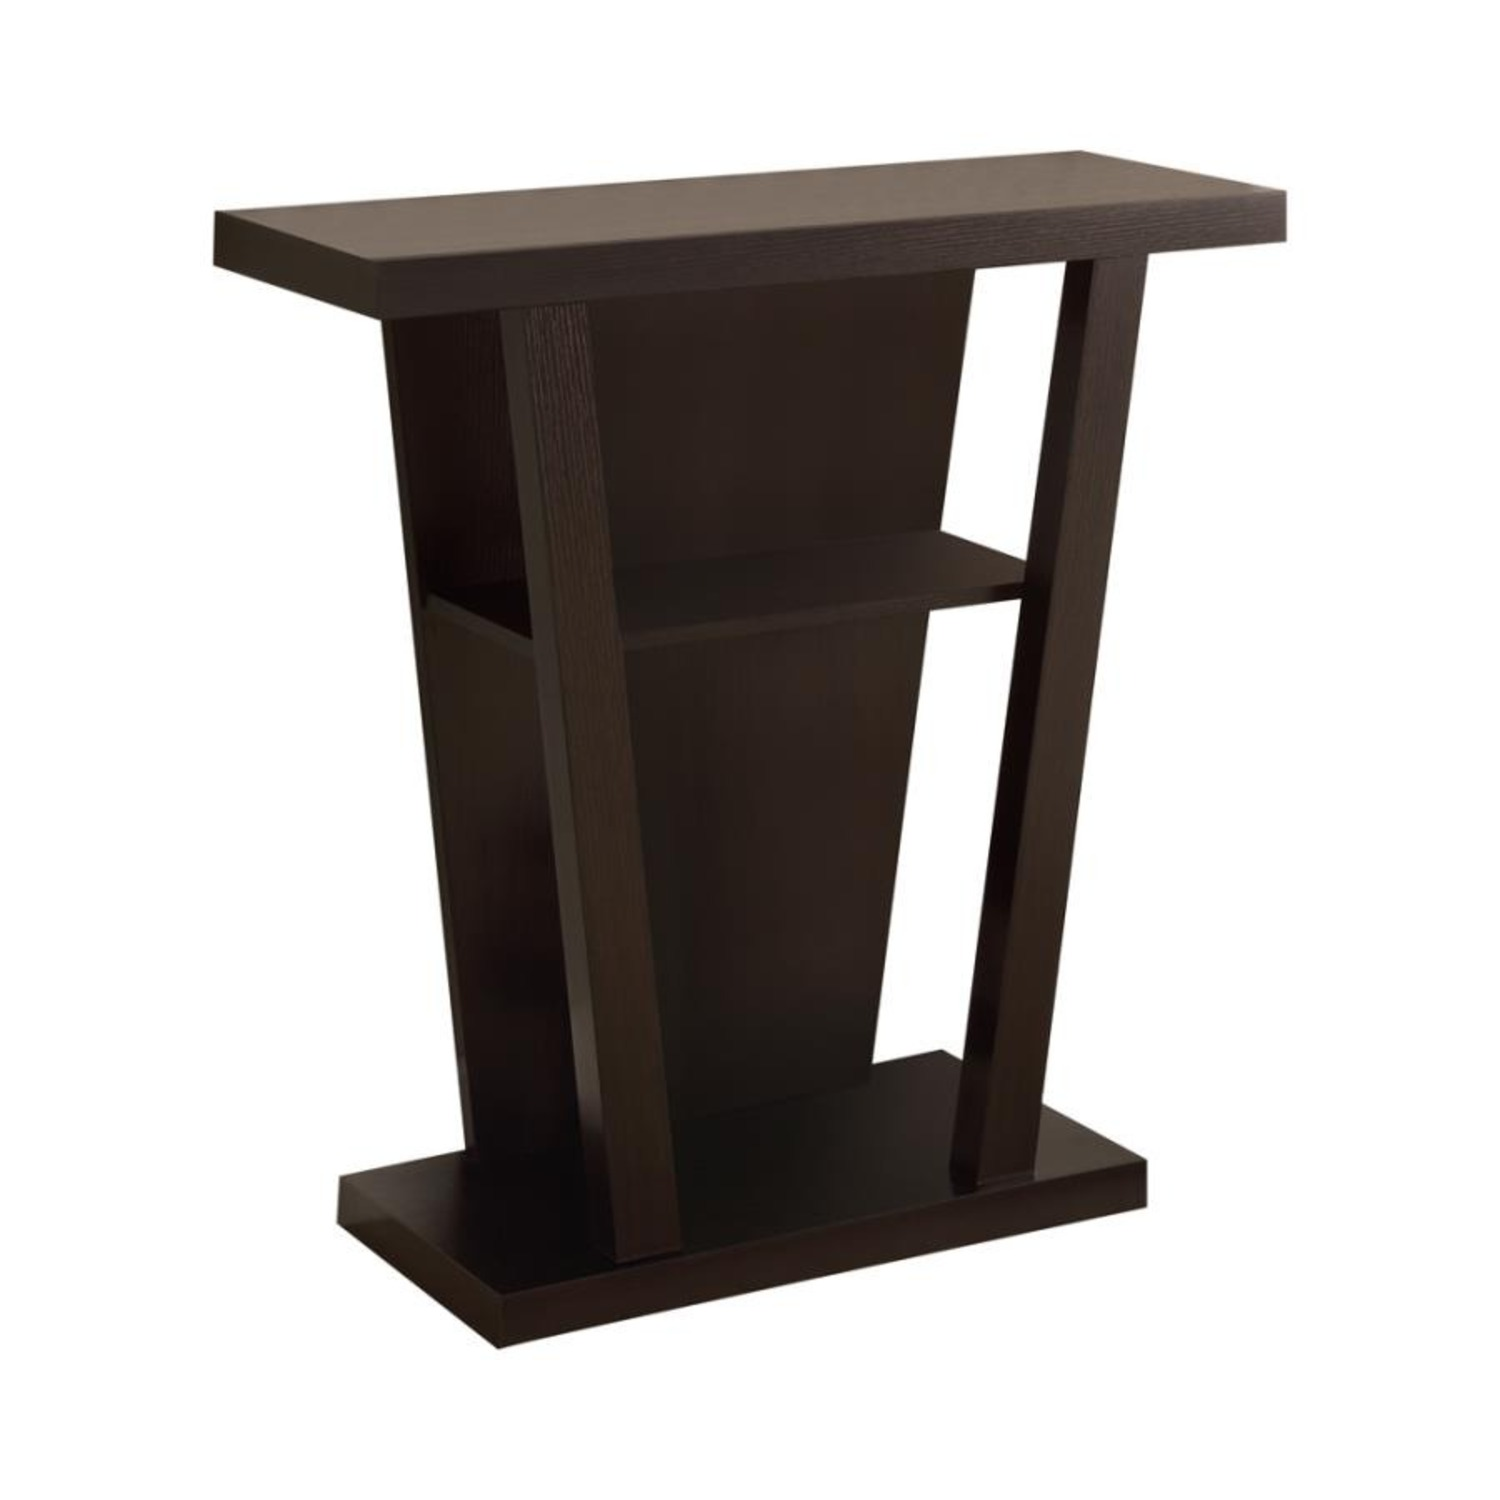 Console Table In Cappuccino W/ 2-Shelves Storage - image-0